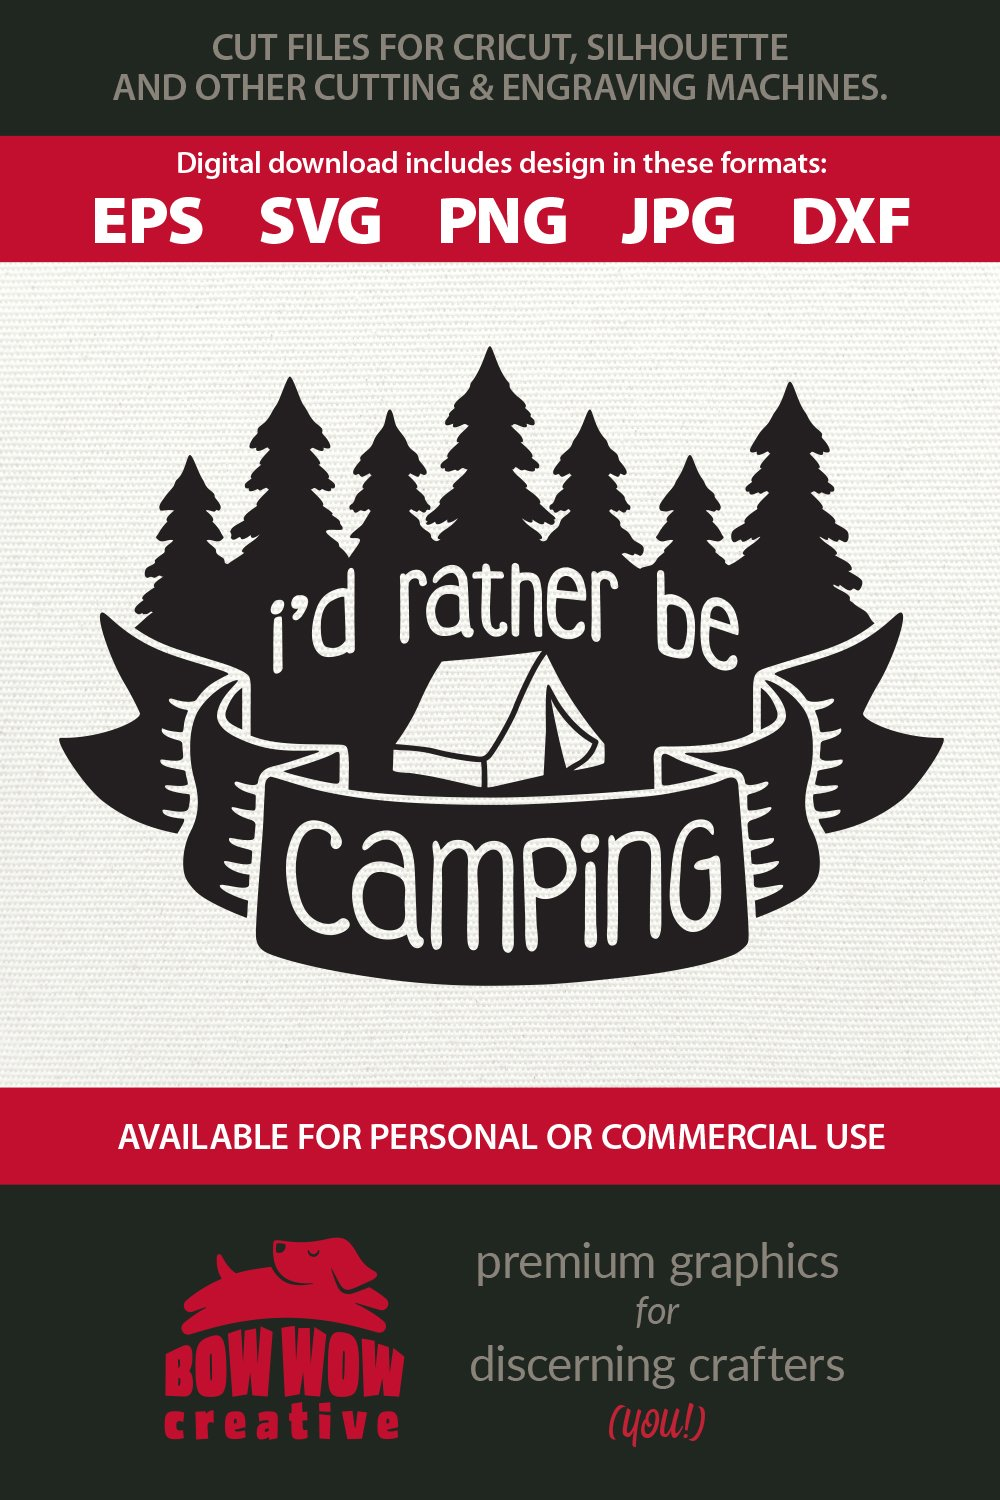 I'd Rather Be Camping - Camping Quote Cutting File & Clipart example image 2